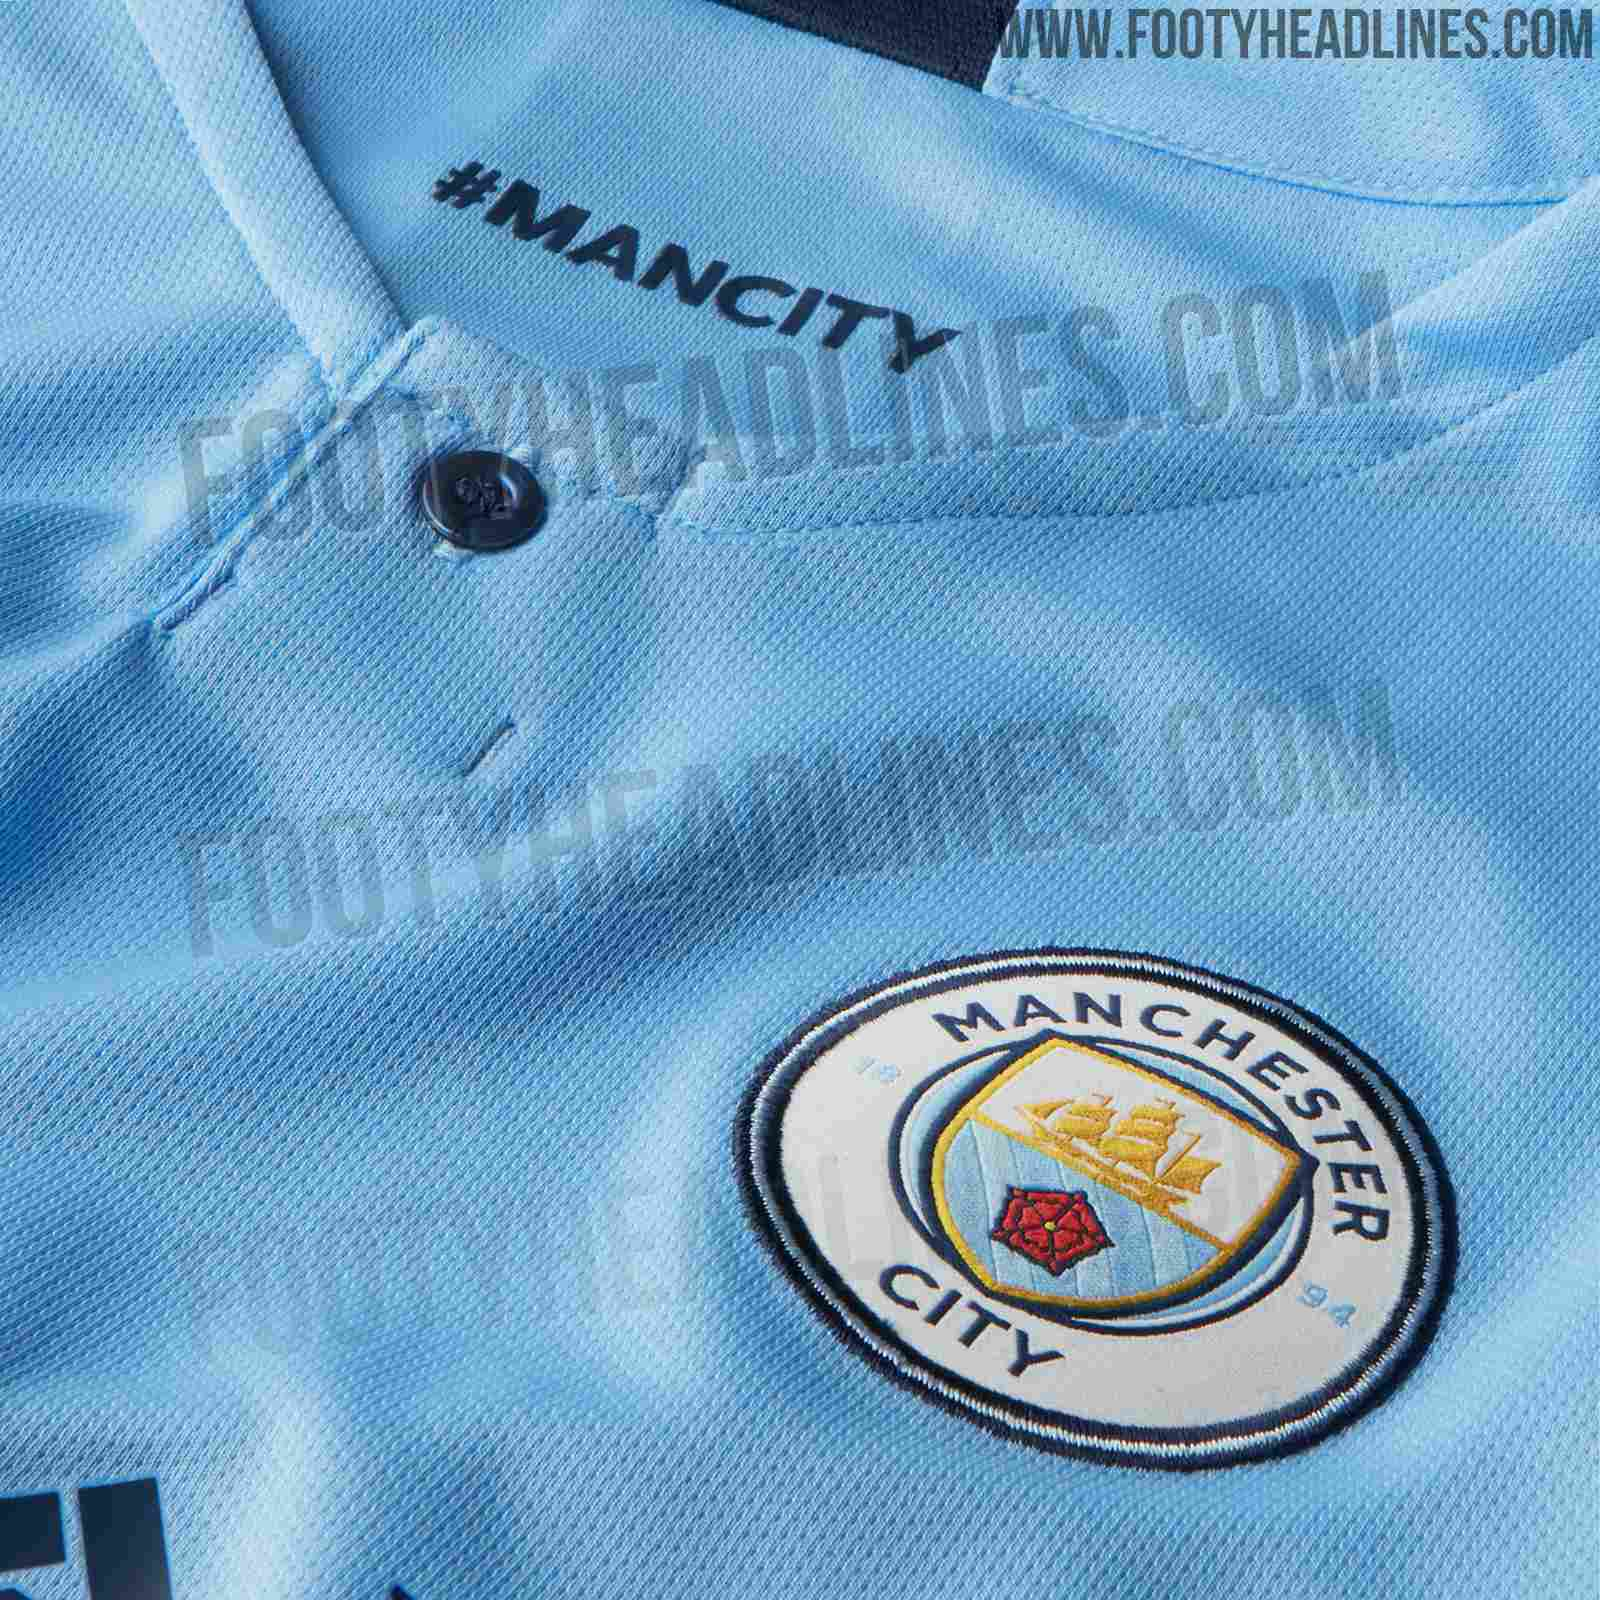 07e3c0eb7 A '#ManCity' print appears on the inside neck of the new home kit, while  'City' is written inside the dark blue neck tape on the outside.